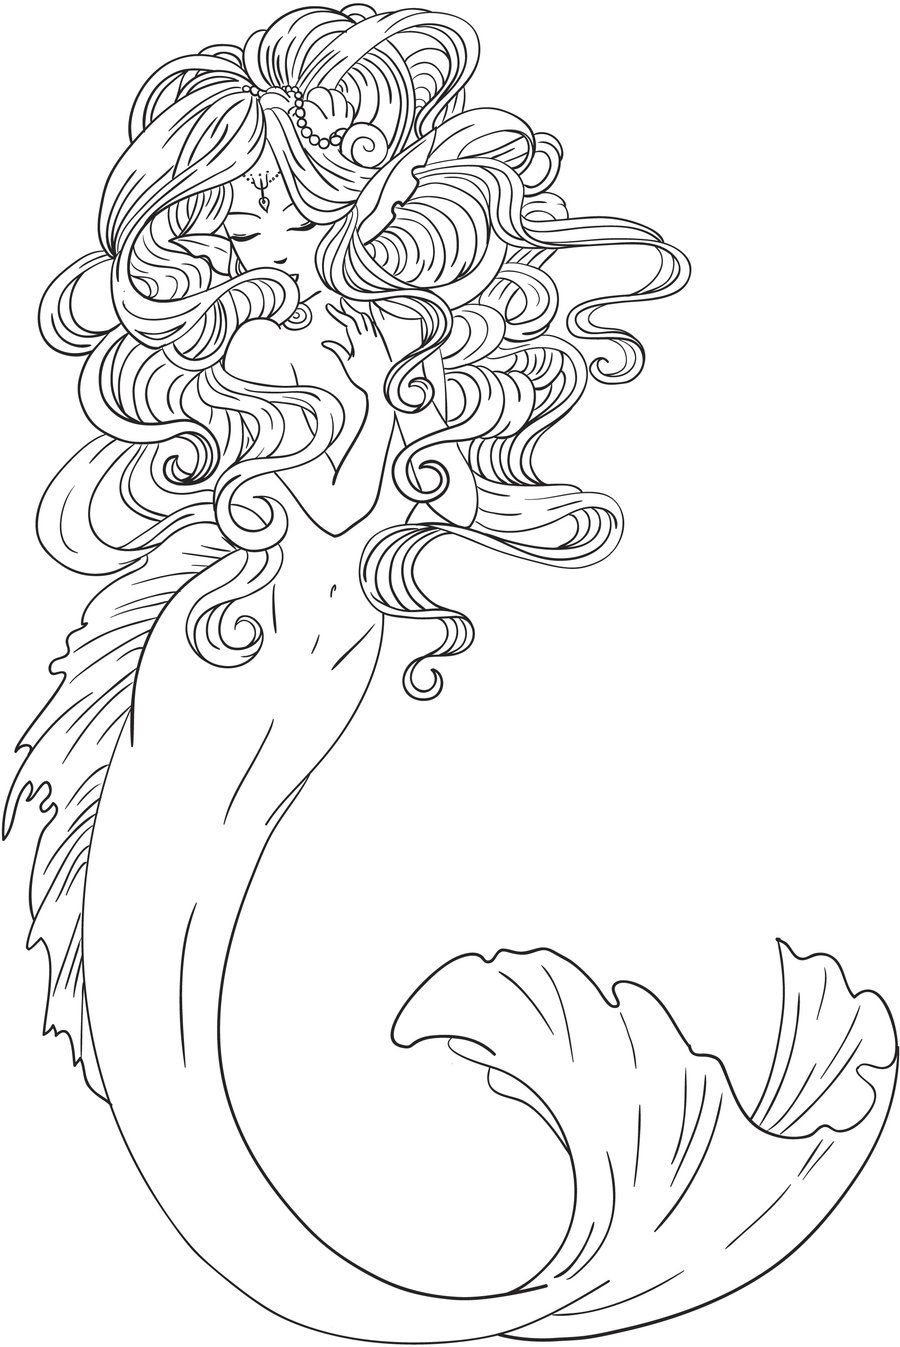 Lineart For Mermaid By Shynimoonstar On Deviantart рисуем